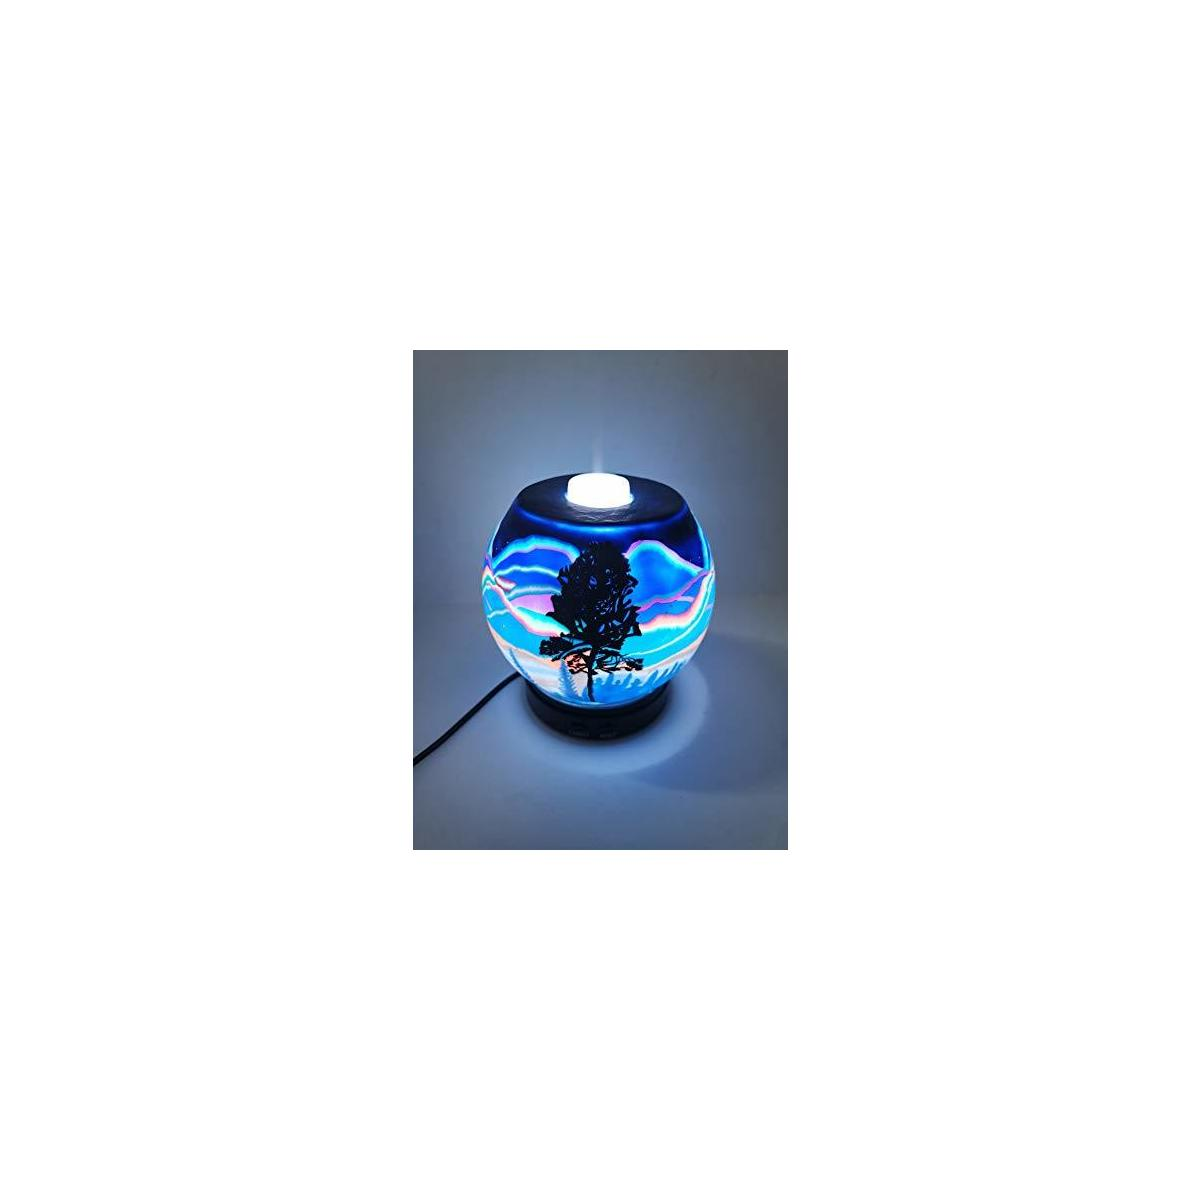 EssentialLitez Essential Oil Diffuser Ultrasonic Handcrafted 120ml Aroma Essential Oil Cool Mist Humidifier with Adjustable Mist Mode, Auto Shut-off and 7 Color LED Lights Changing (Northern Lights)